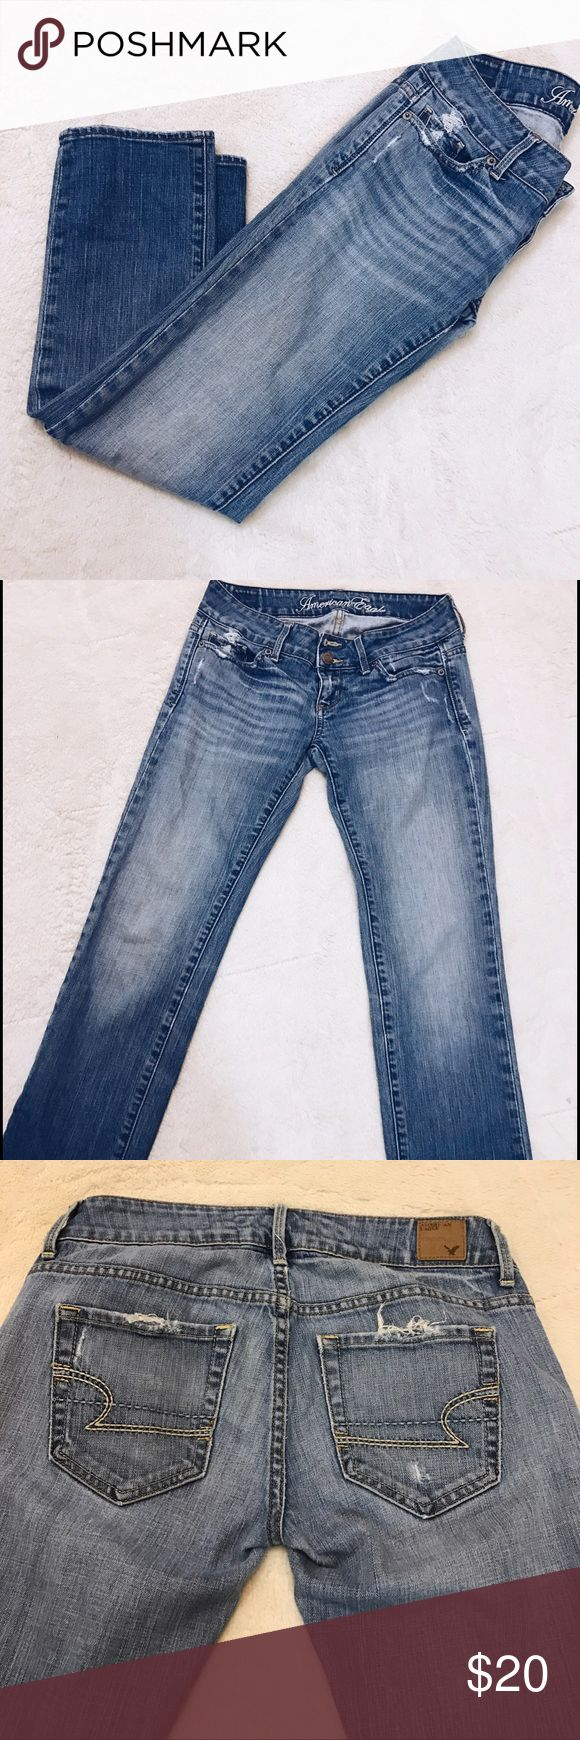 American Eagle Jeans American Eagle jeans with distressed pockets American Eagle Outfitters Jeans